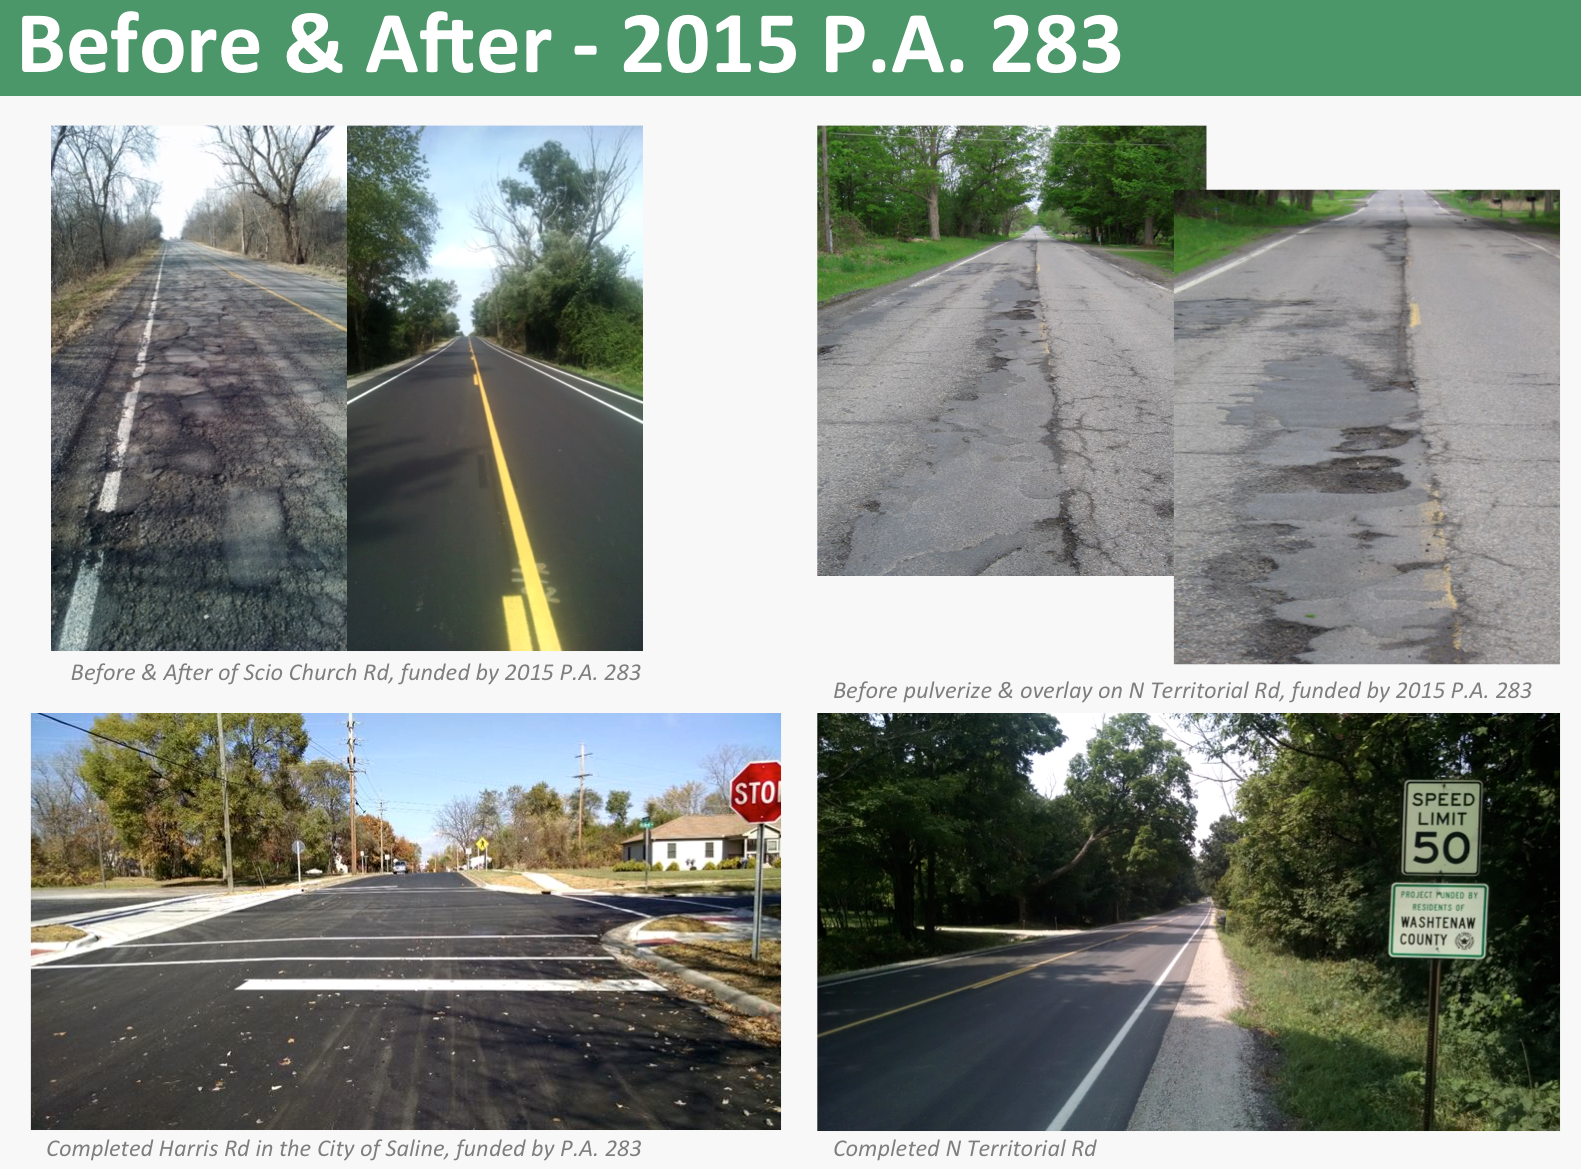 Before and After pictures of projects that benefitted from PA 283